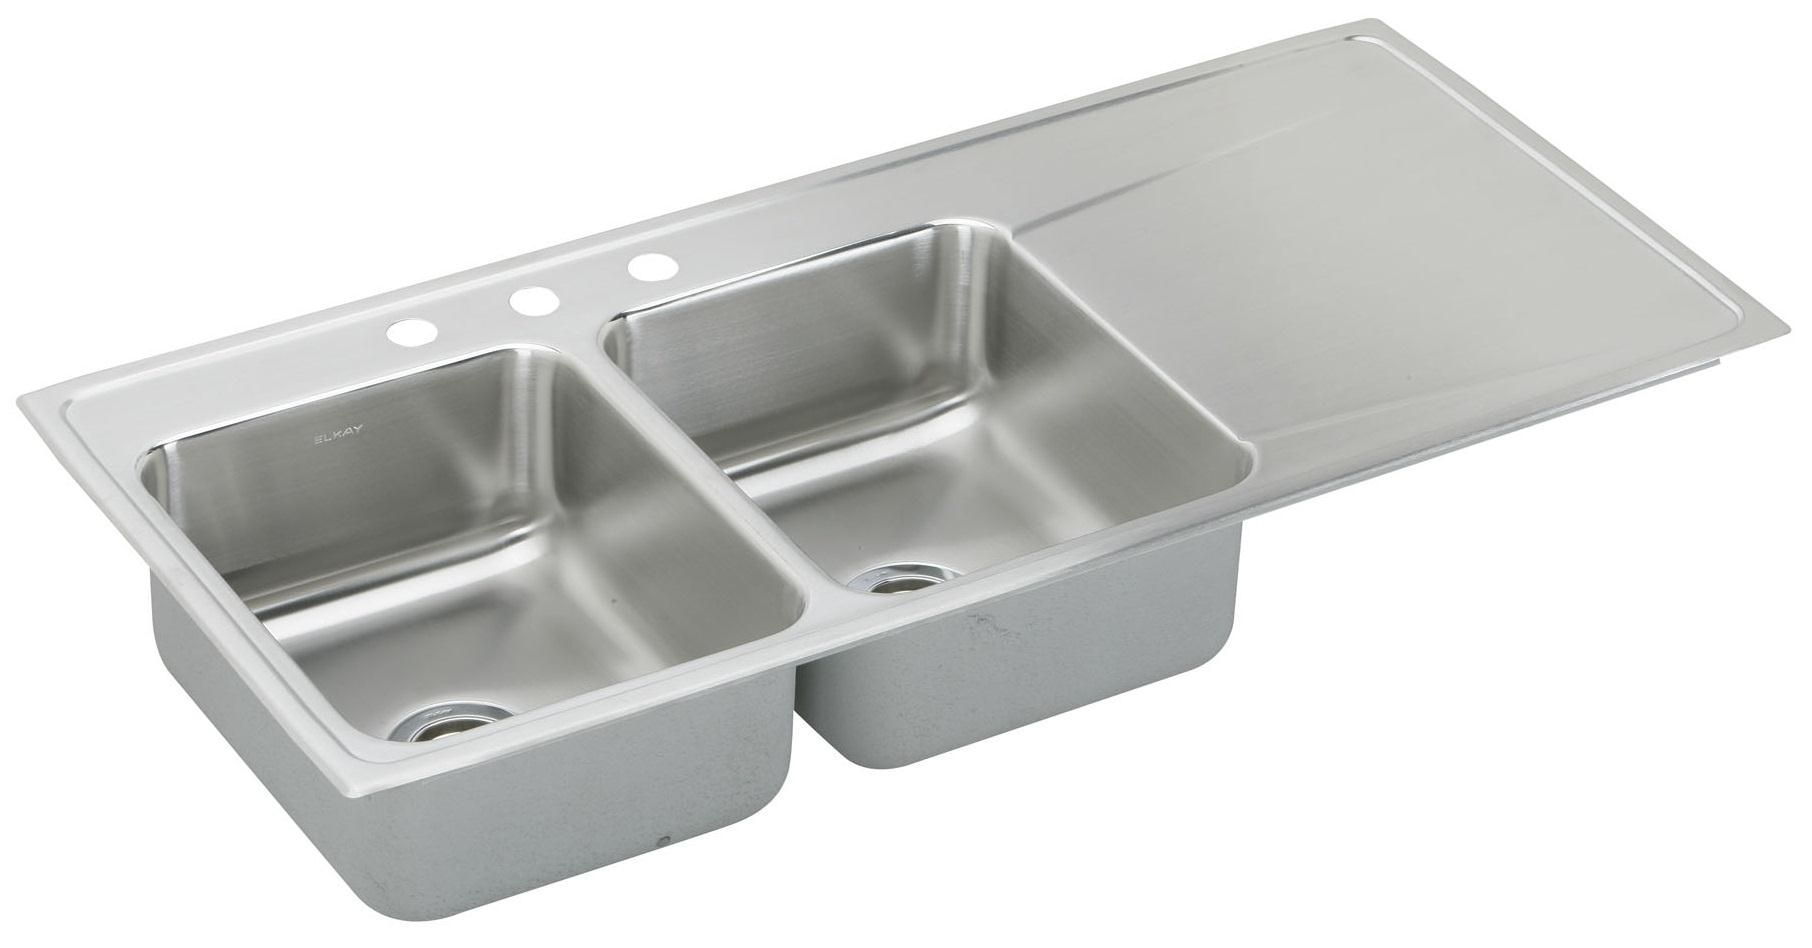 Stainless Steel Double Bowl Kitchen Sink With Drainboard